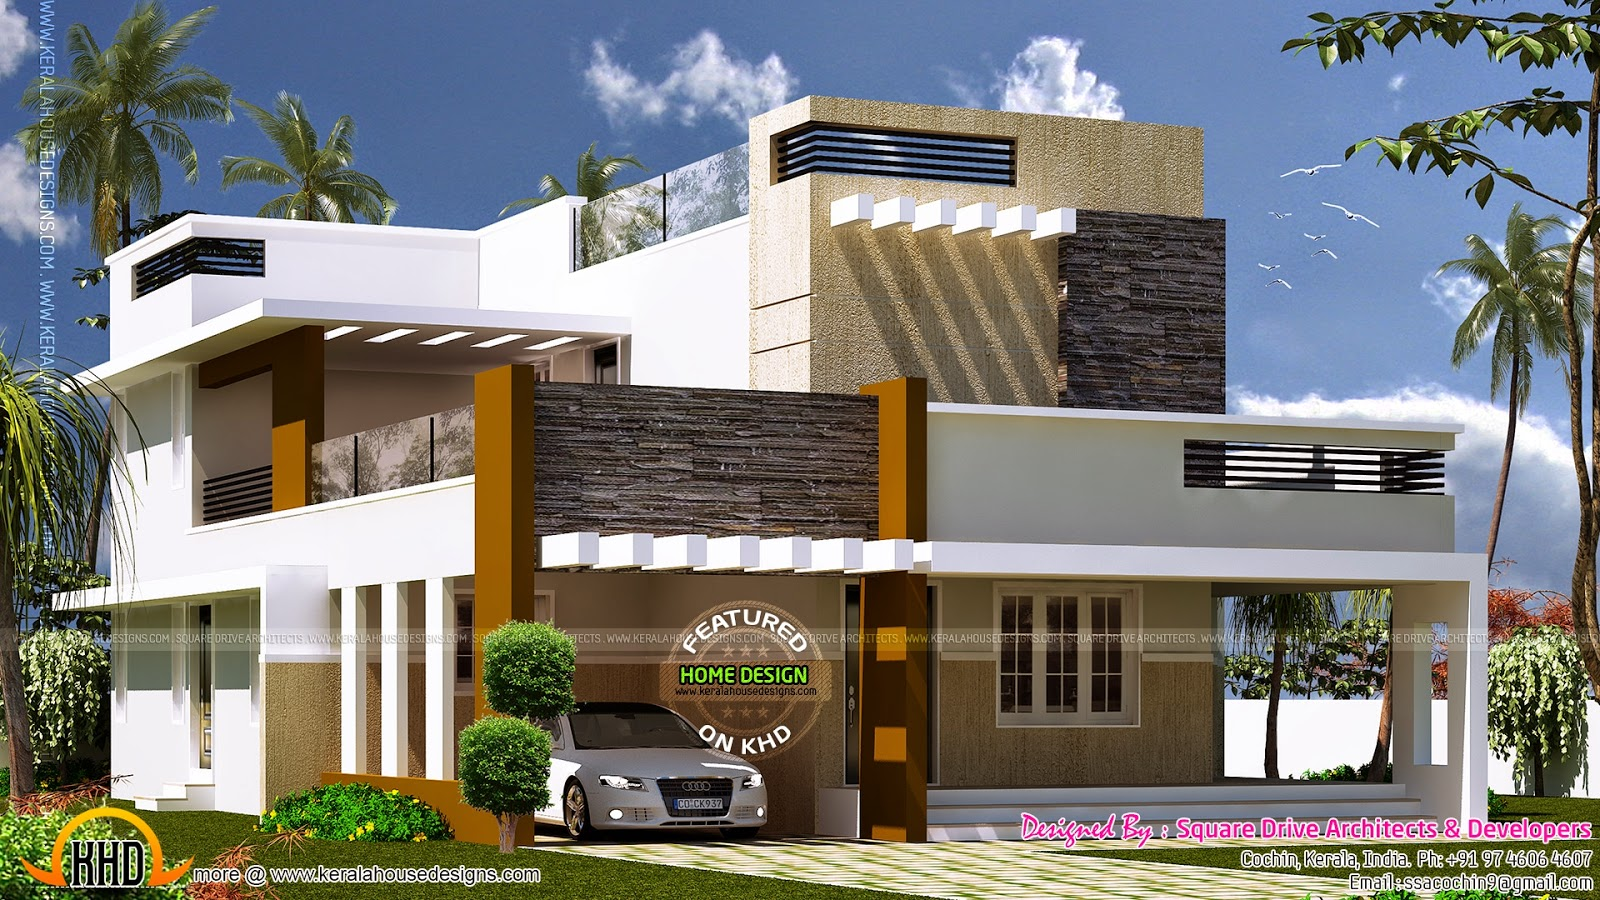 Duplex house plan india keralahousedesigns for Exterior house designs indian style